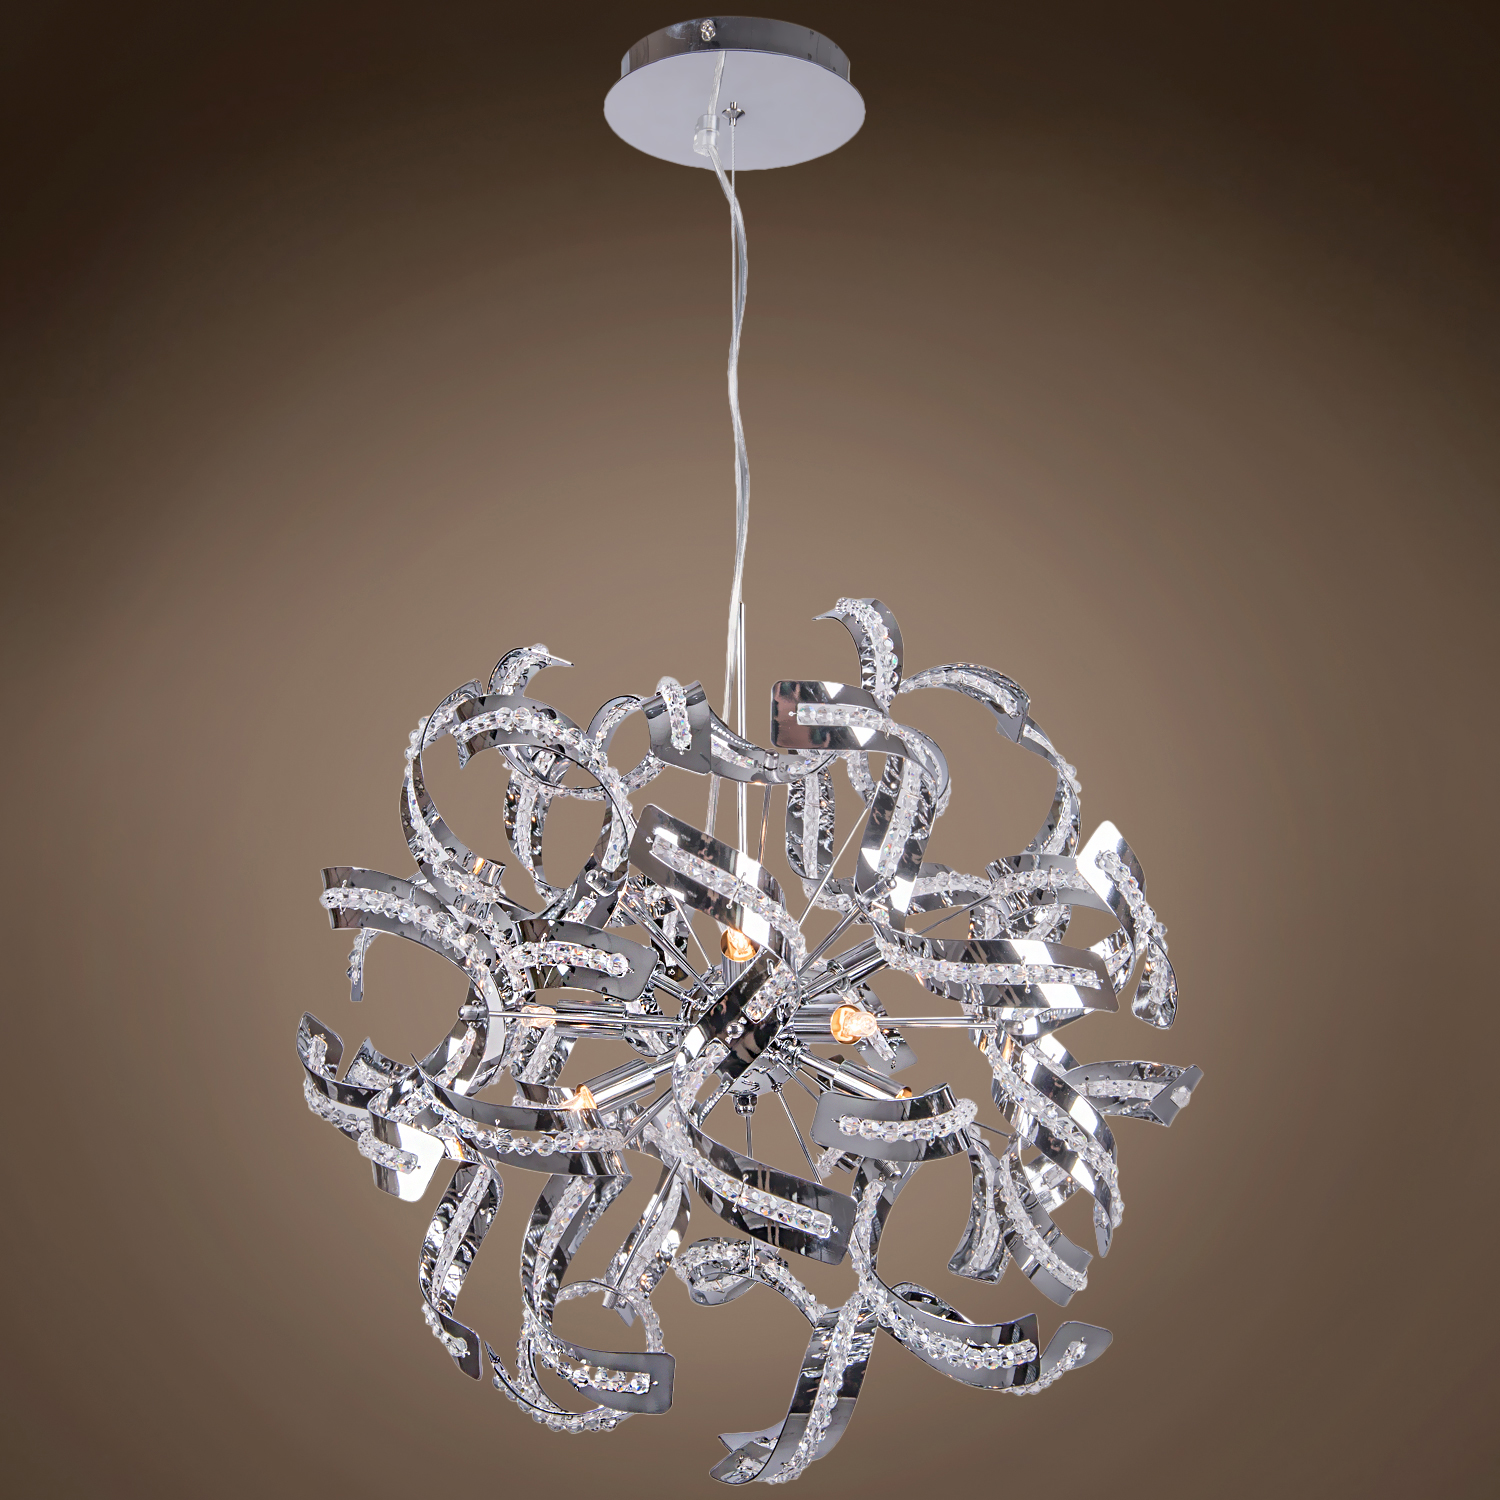 Joshua Marshal 700084 001 9 Light Crystal Pendant Chandelier Light In Chrome Finish With Crystal